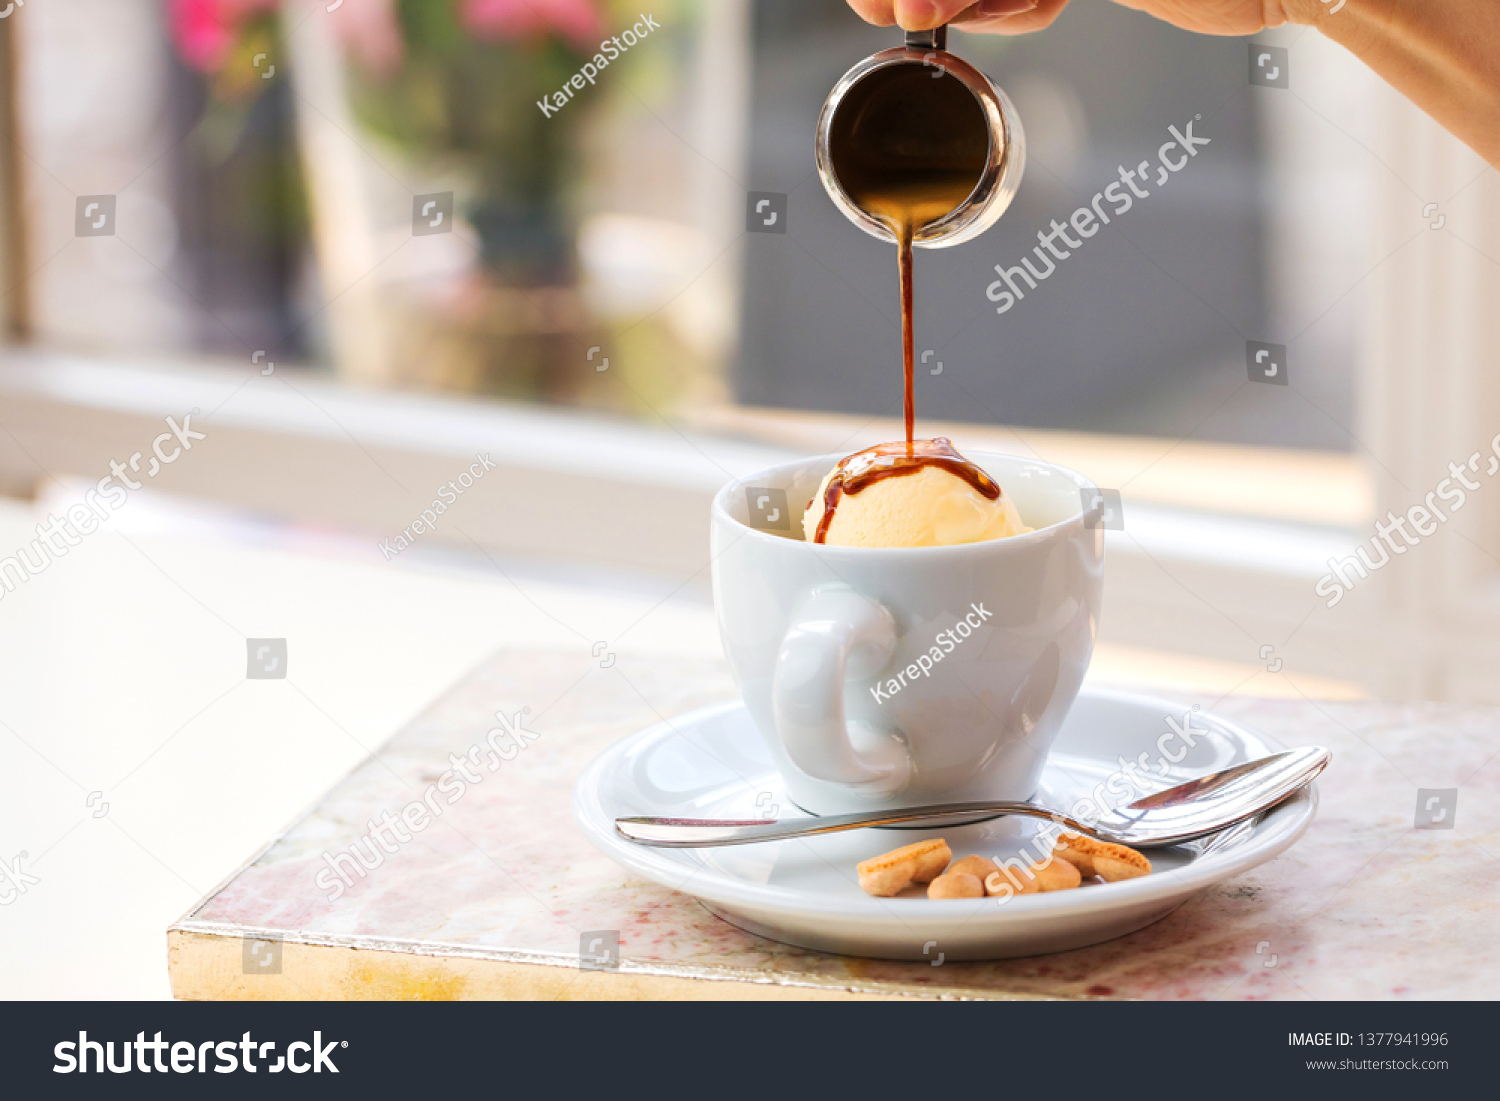 Marmortisch Cafe Affogato Coffee Ice Cream On Cup Stock Photo Edit Now 1377941996